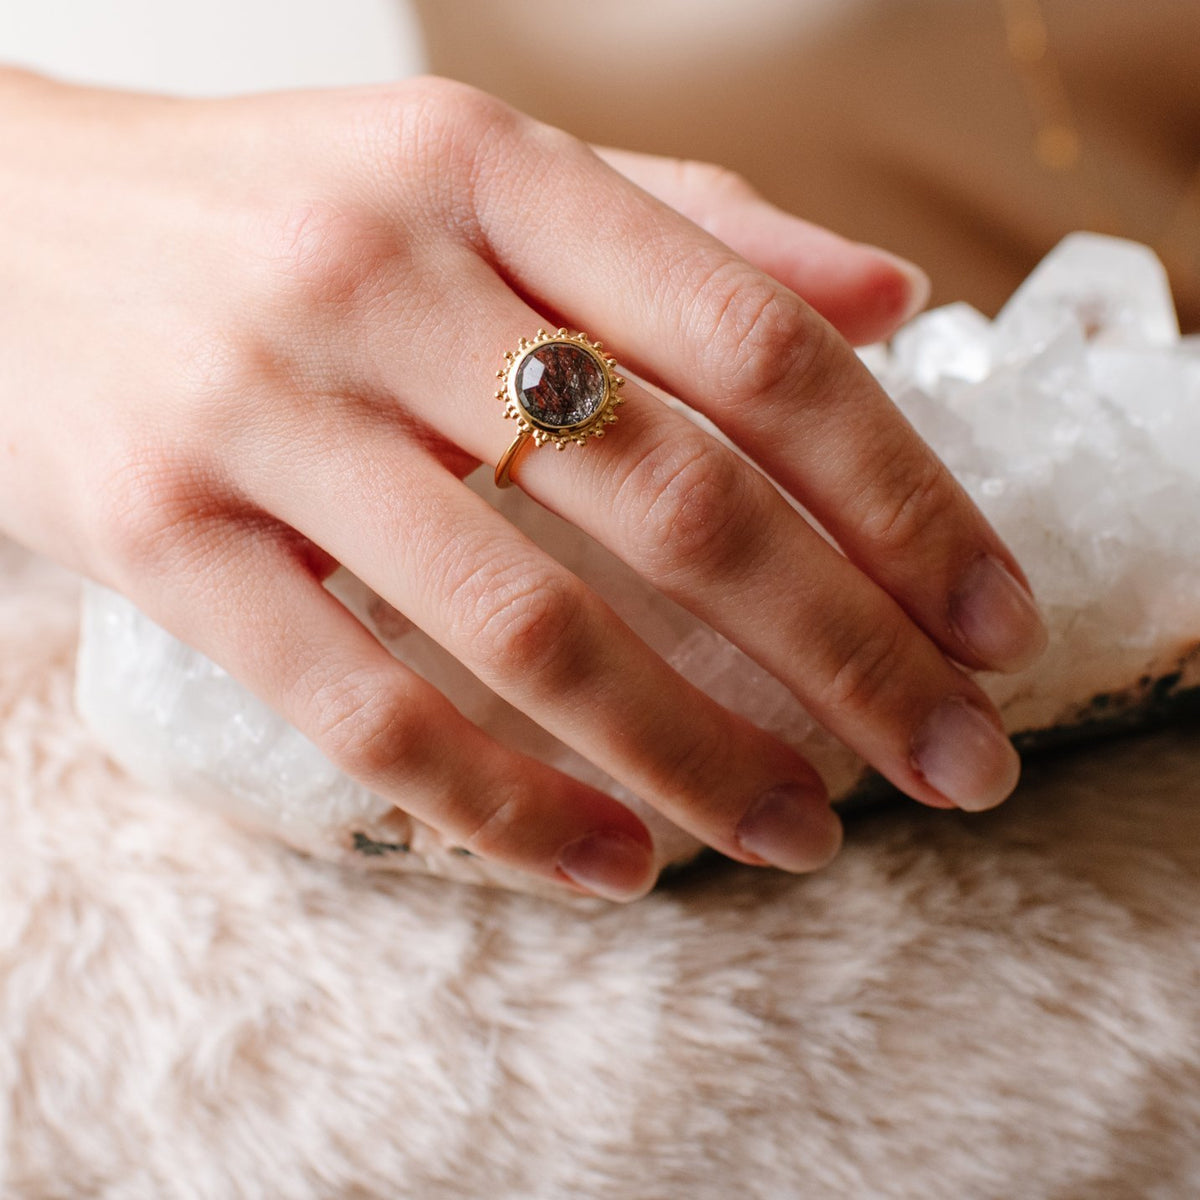 BELIEVE SOLEIL RING - BLACK RUTILATED QUARTZ & GOLD - SO PRETTY CARA COTTER